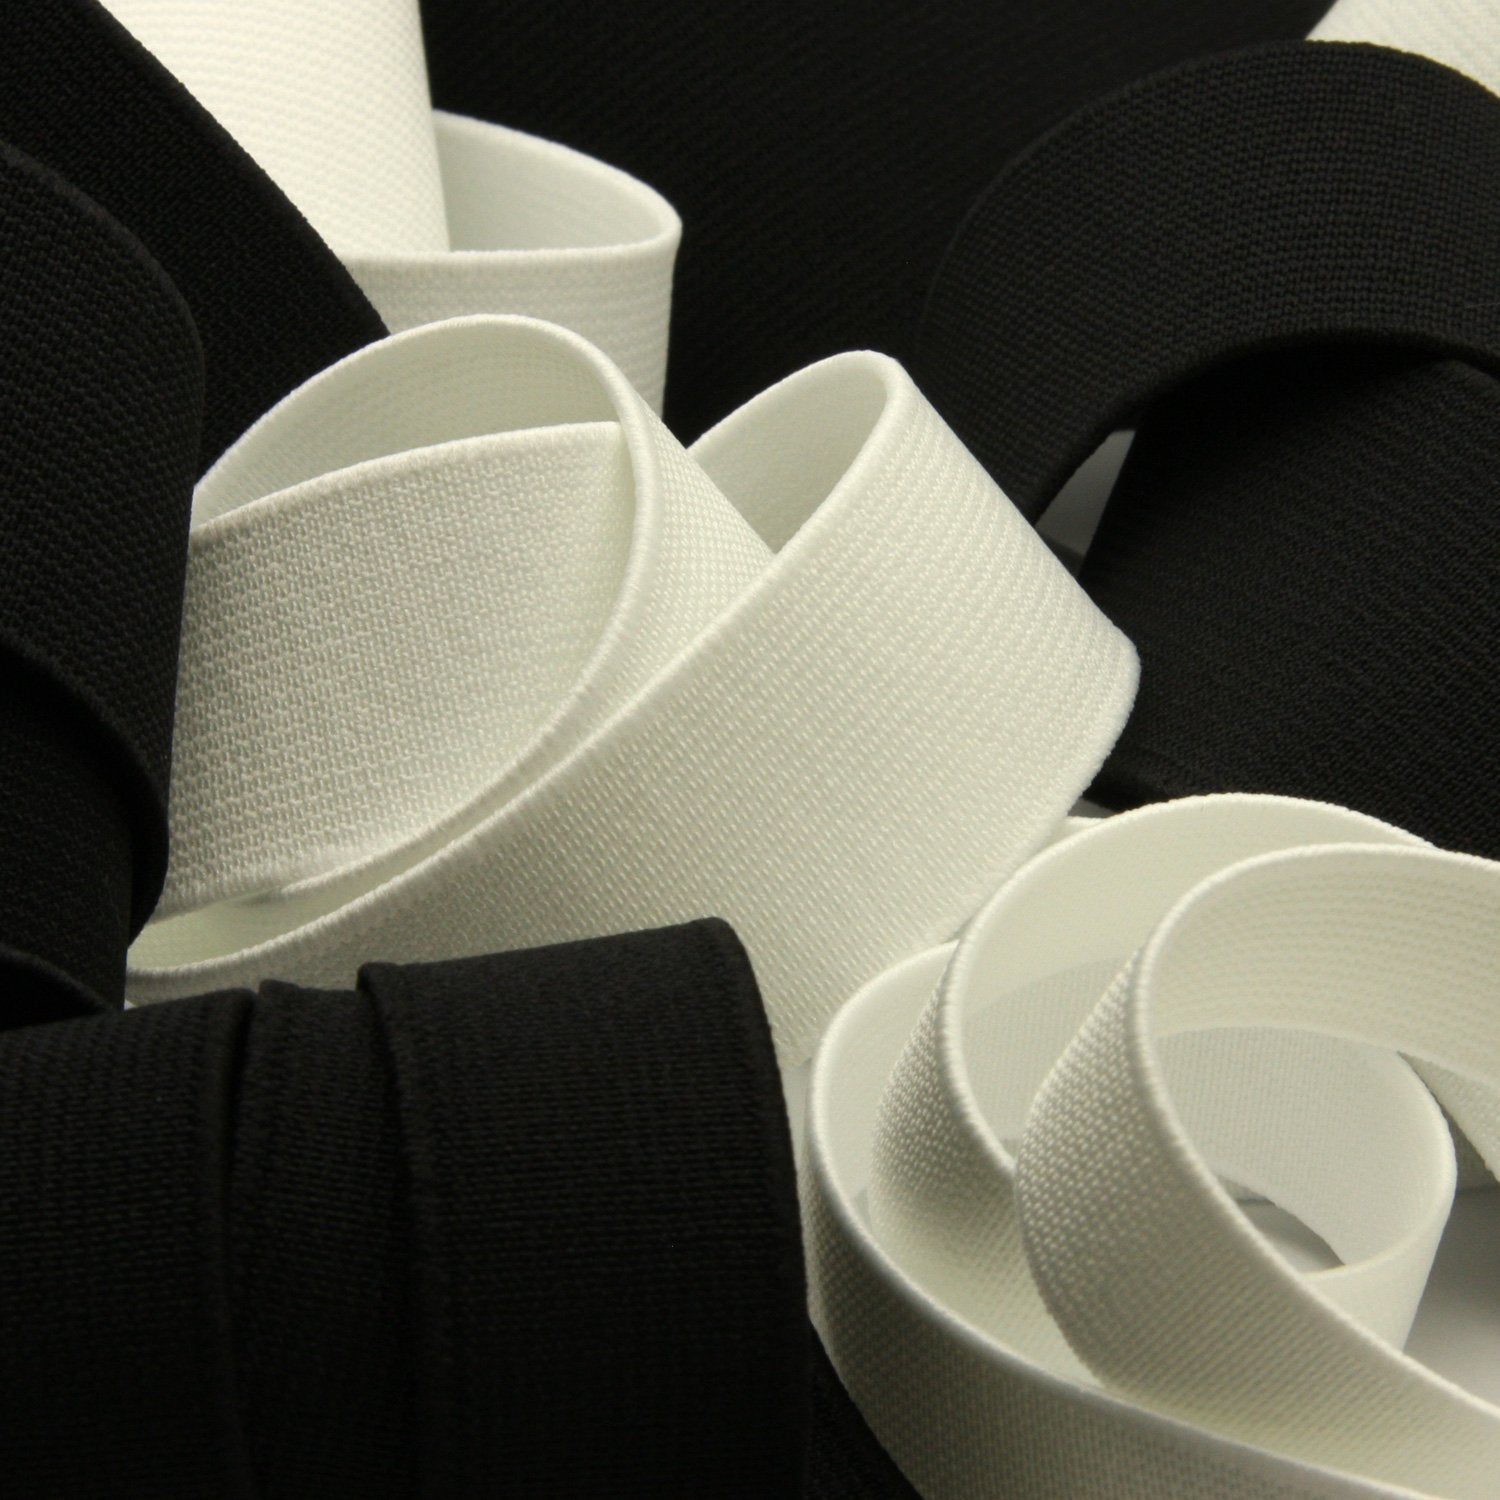 FUJIYAMA RIBBON [Wholesale] Soft Type Inside Belt 60mm 30 Meters Roll Off White